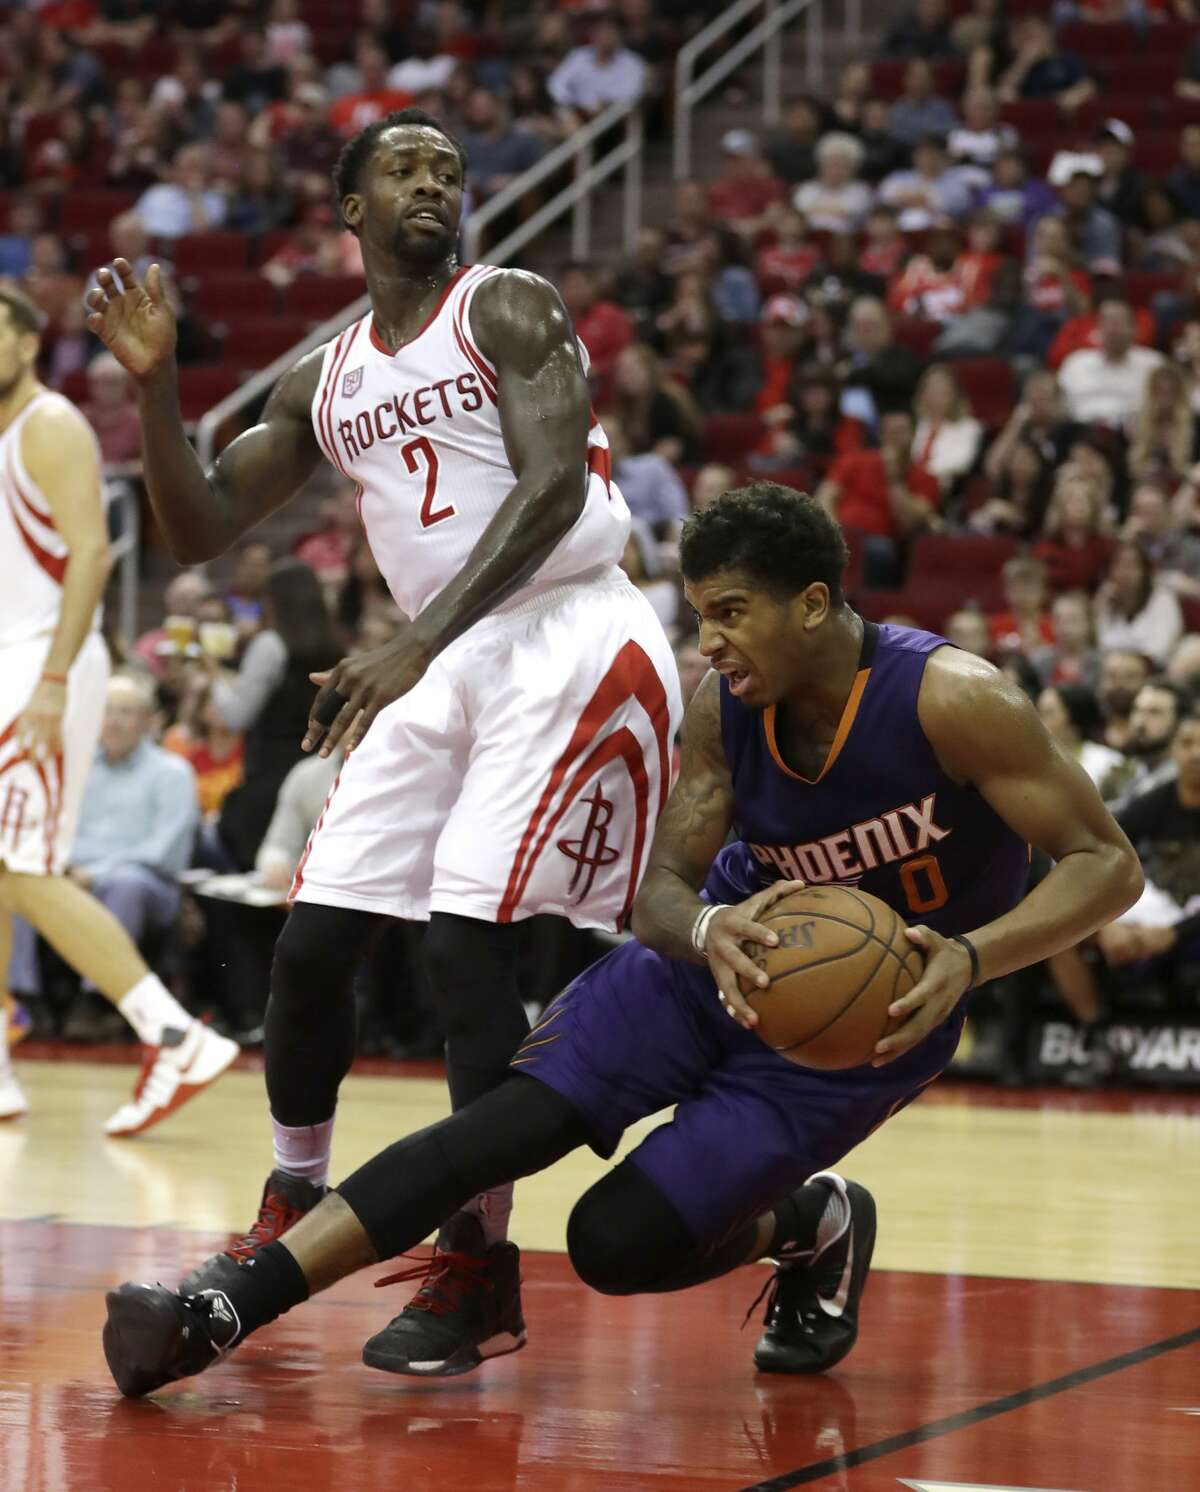 Phoenix Suns' Marquese Chriss (0) is fouled by Houston Rockets' Patrick Beverley (2) during the second half of an NBA basketball game Saturday, Feb. 11, 2017, in Houston. The Rockets won 133-102. (AP Photo/David J. Phillip)